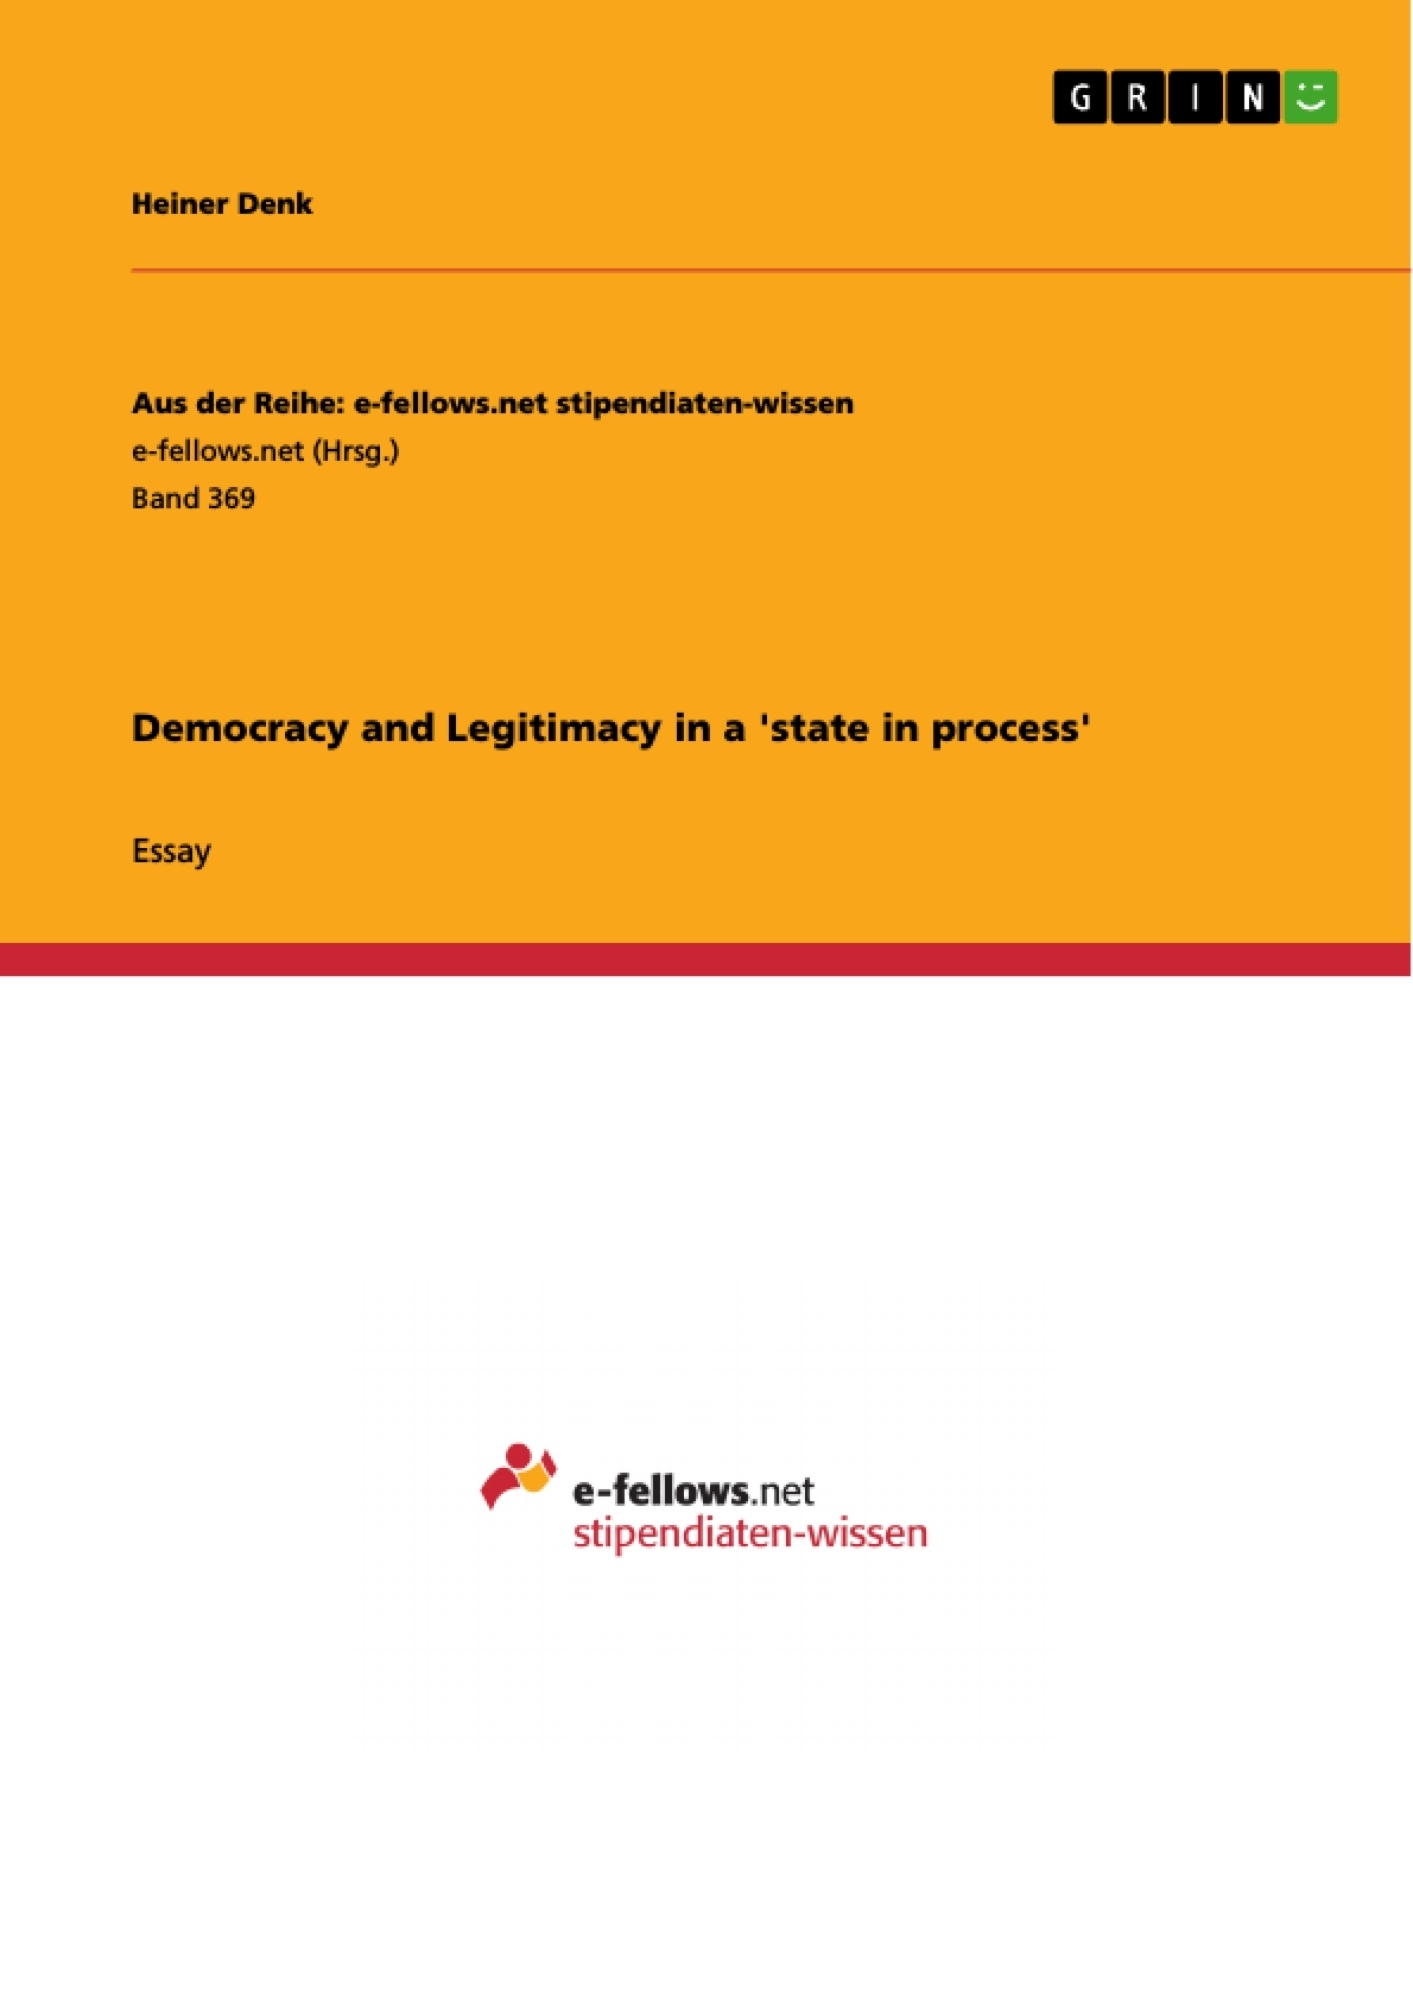 Title: Democracy and Legitimacy in a 'state in process'